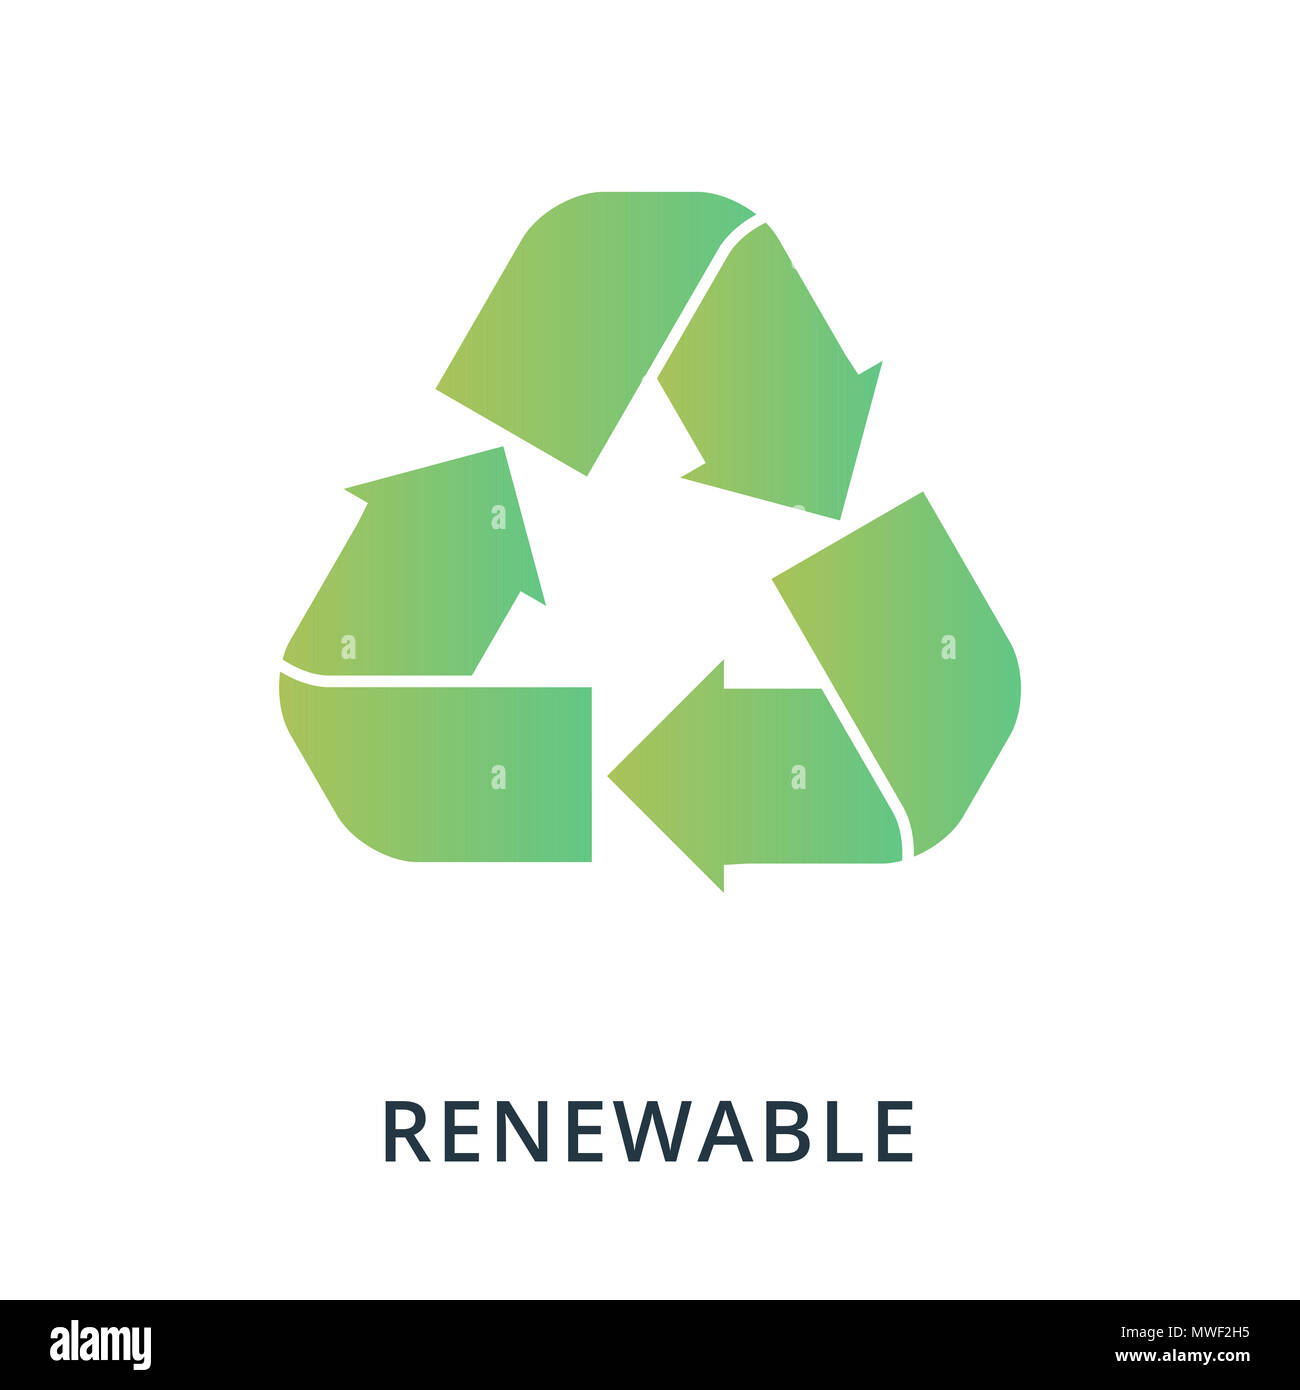 Renewable icon. Flat style icon design. UI. Illustration of renewable icon. Pictogram isolated on white. Ready to use in web design, apps, software, print. - Stock Image